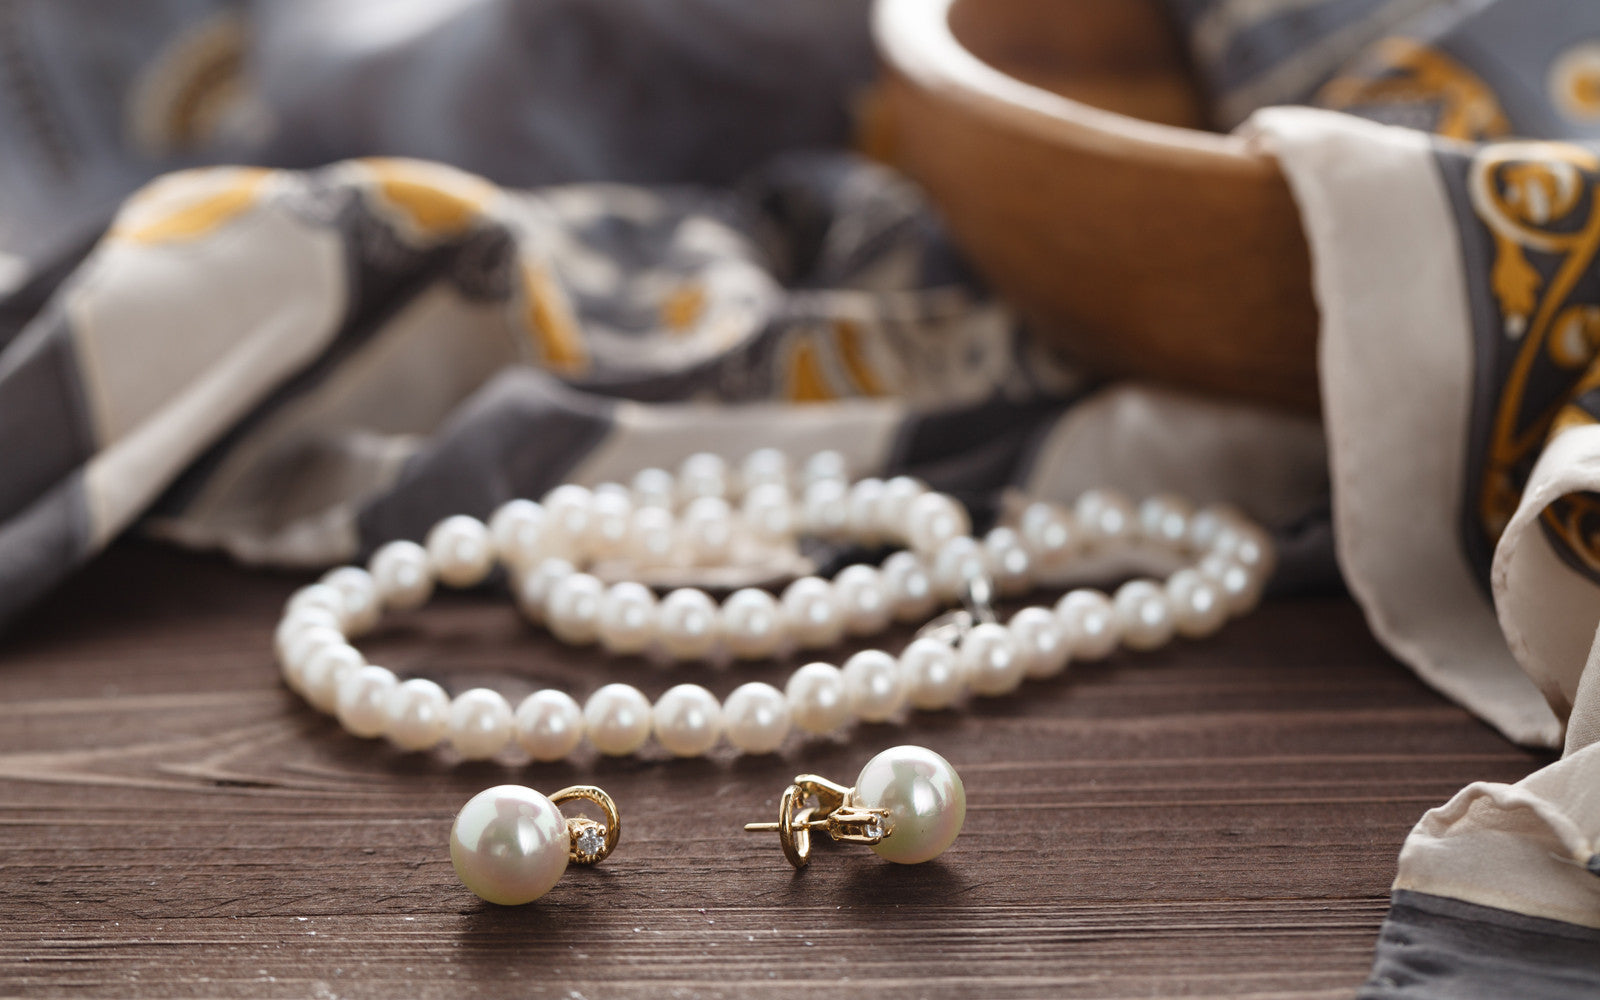 Enhance the beauty of pearls set by wearing them!